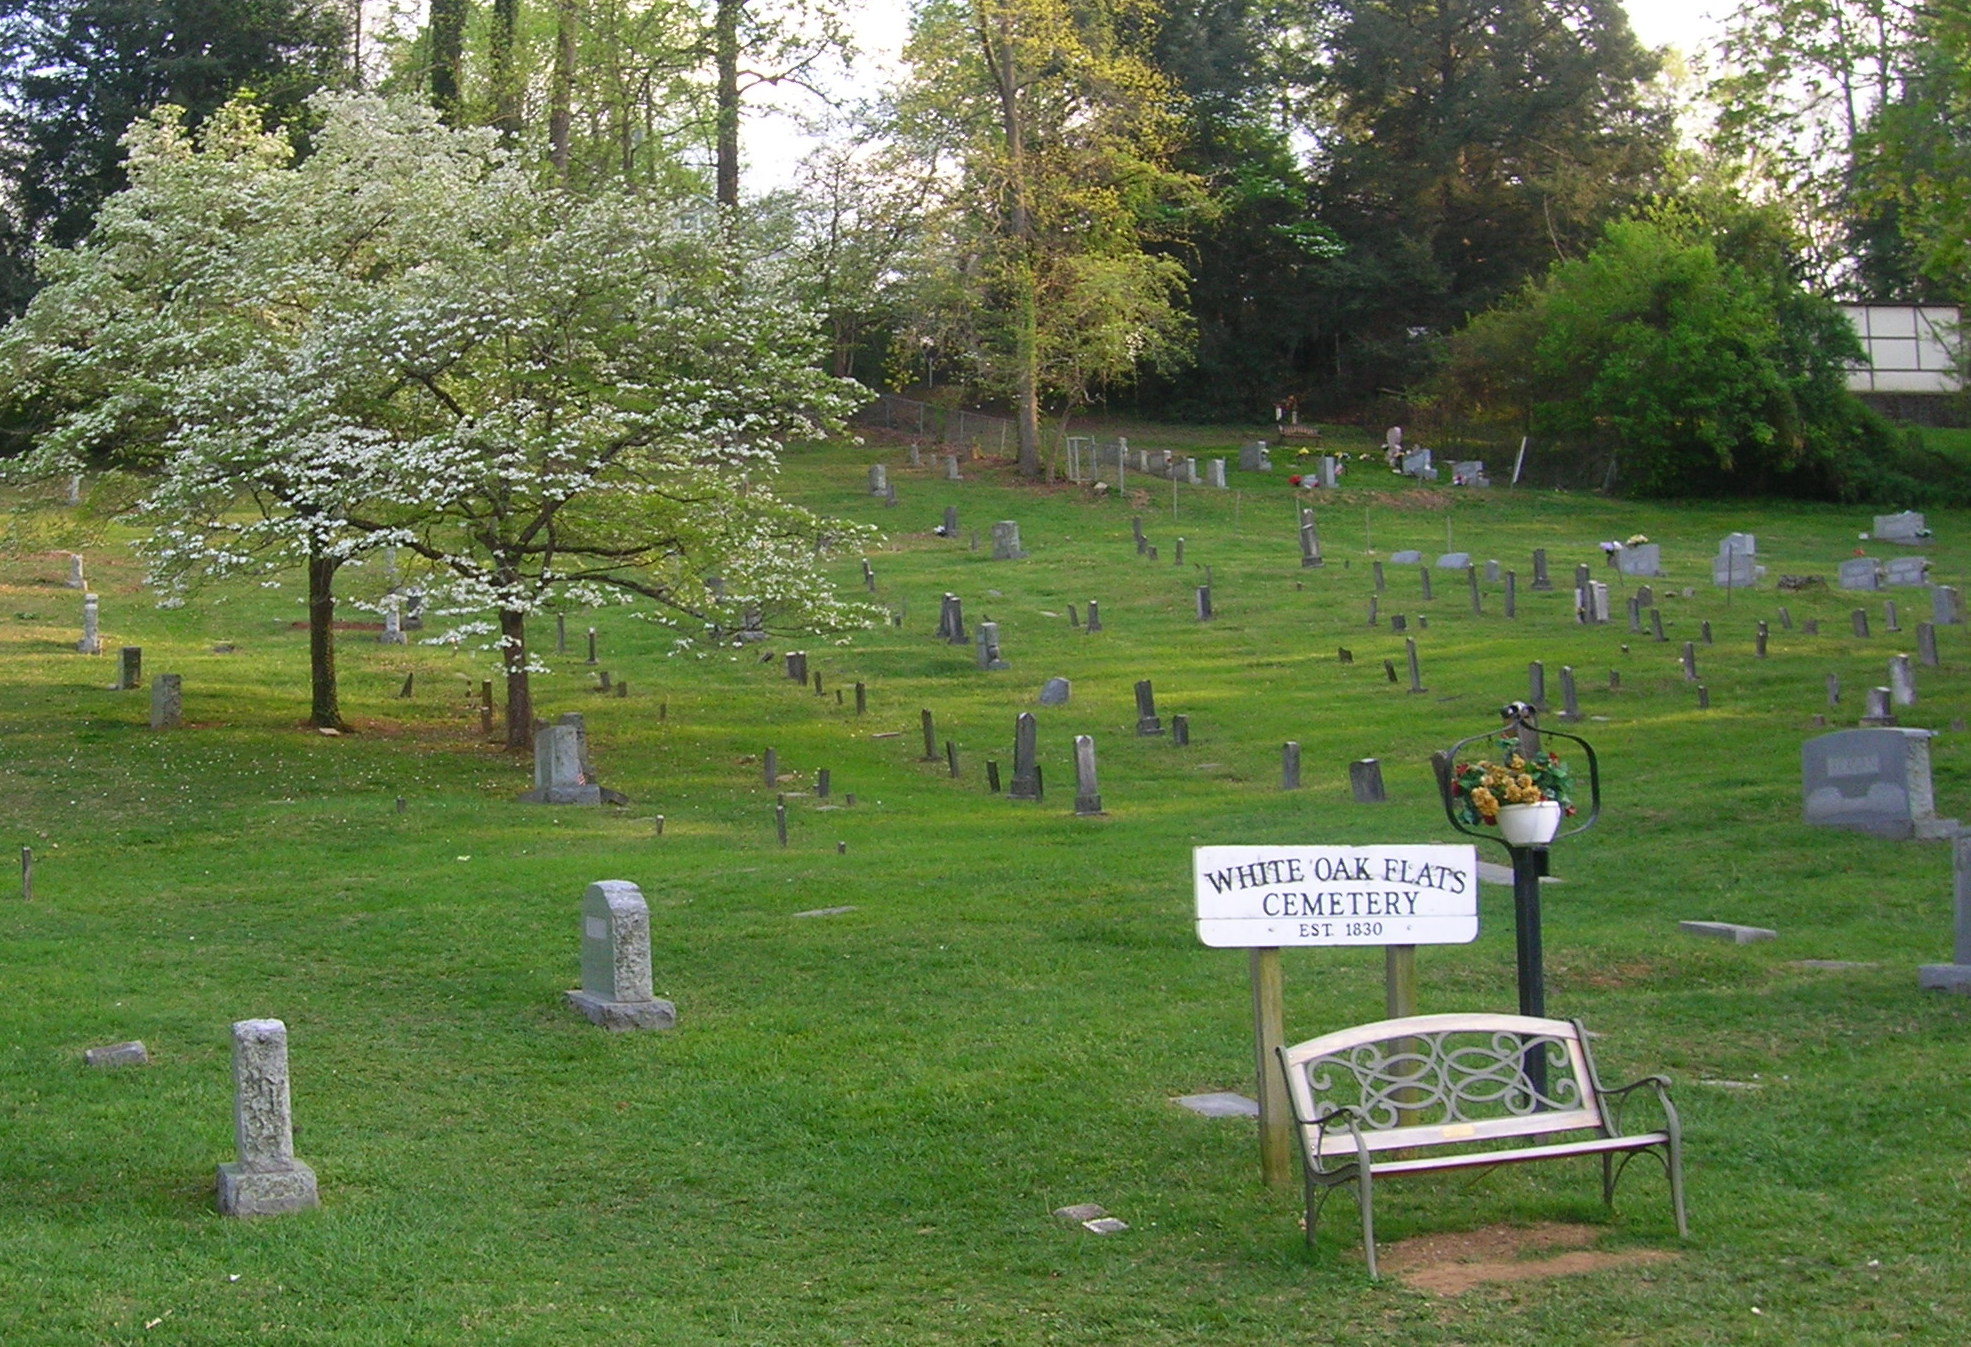 This daytime view of the White Oak Flats cemetery in Gatlinburg shows not one of the many ghosts and ghouls or tour will tell you about